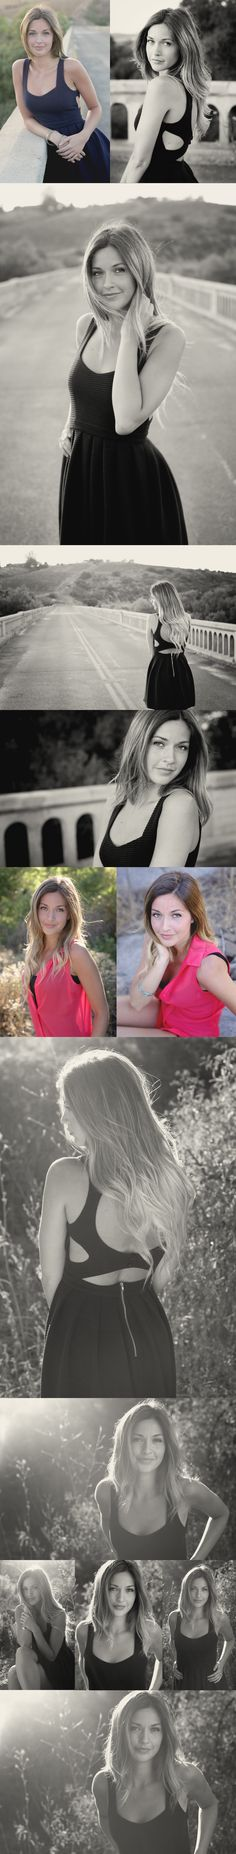 #posing #women #seniorportraits  posing ideas for women or senior portraits